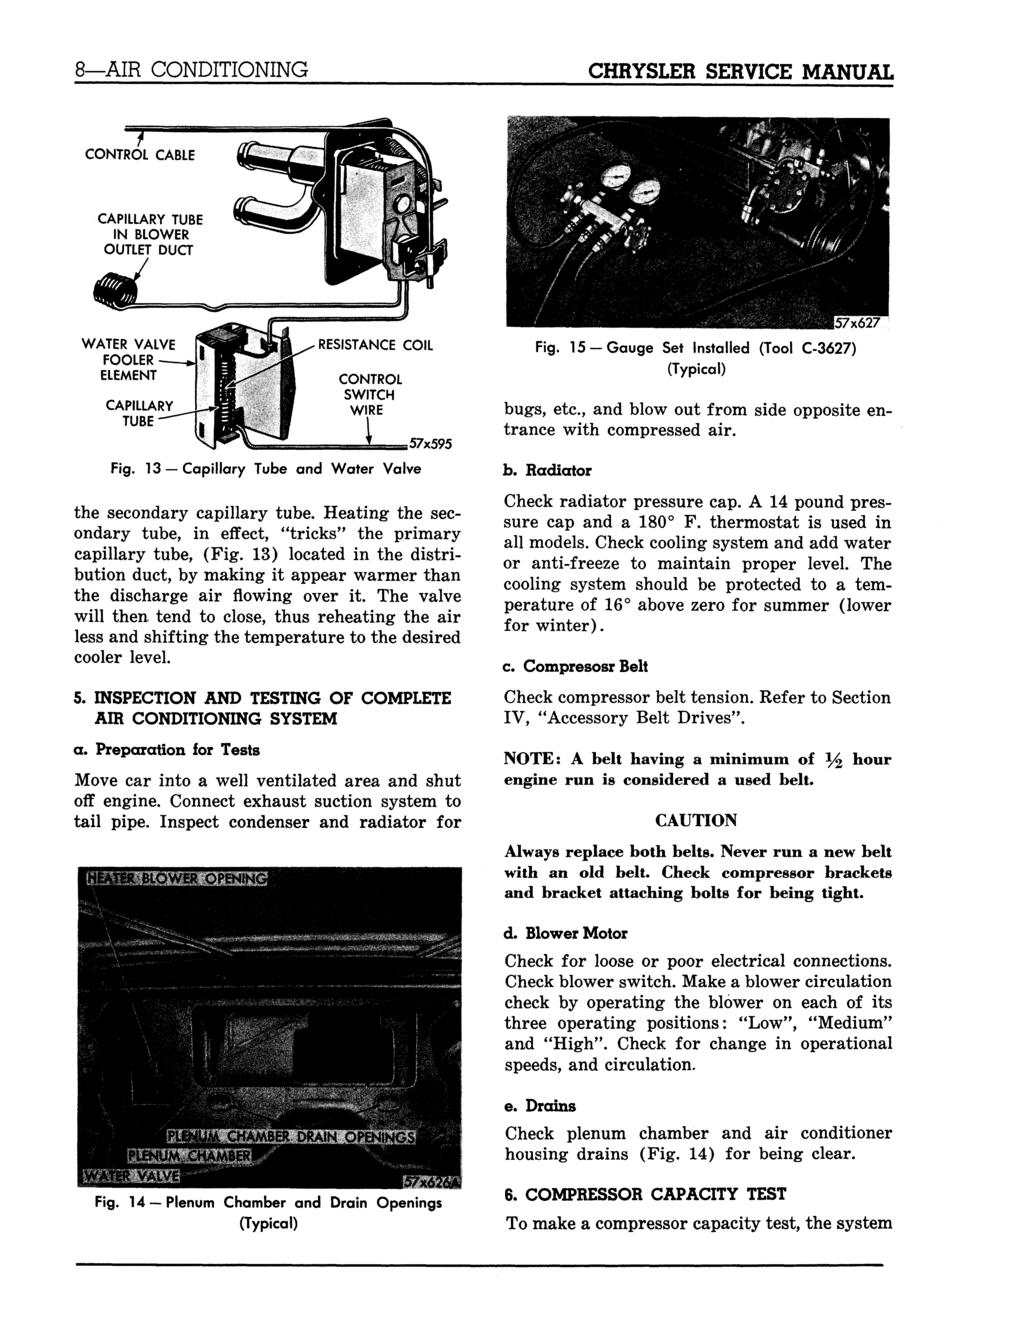 Chrysler Heater Air Conditioning System Pdf Typical Ac Compressor Removal And Installation Diagram 8 Service Manual Capillary Tube In Blower Outlet Duct Water Valve Fooler